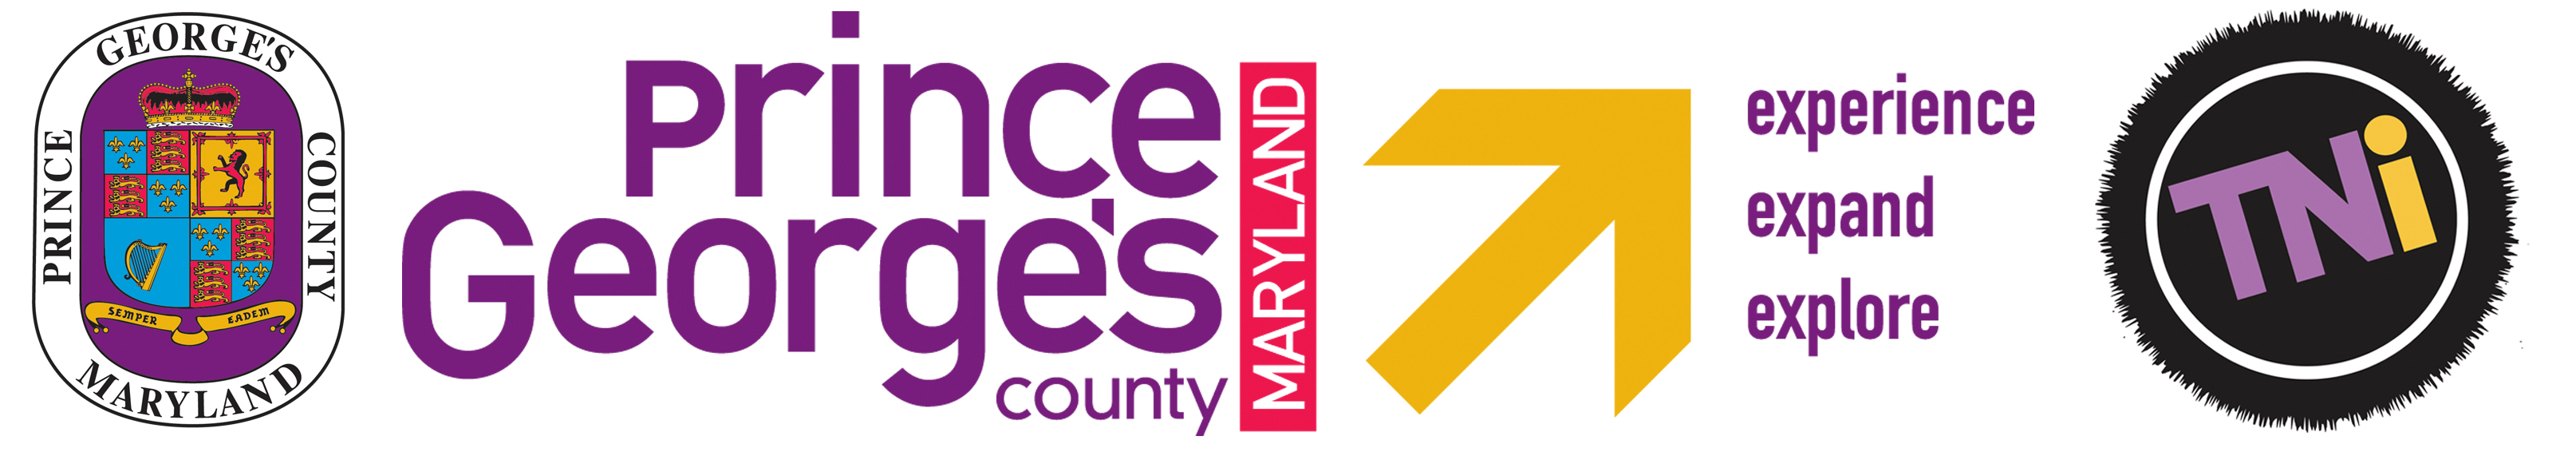 Prince George's County Transforming Neighborhoods Initiative